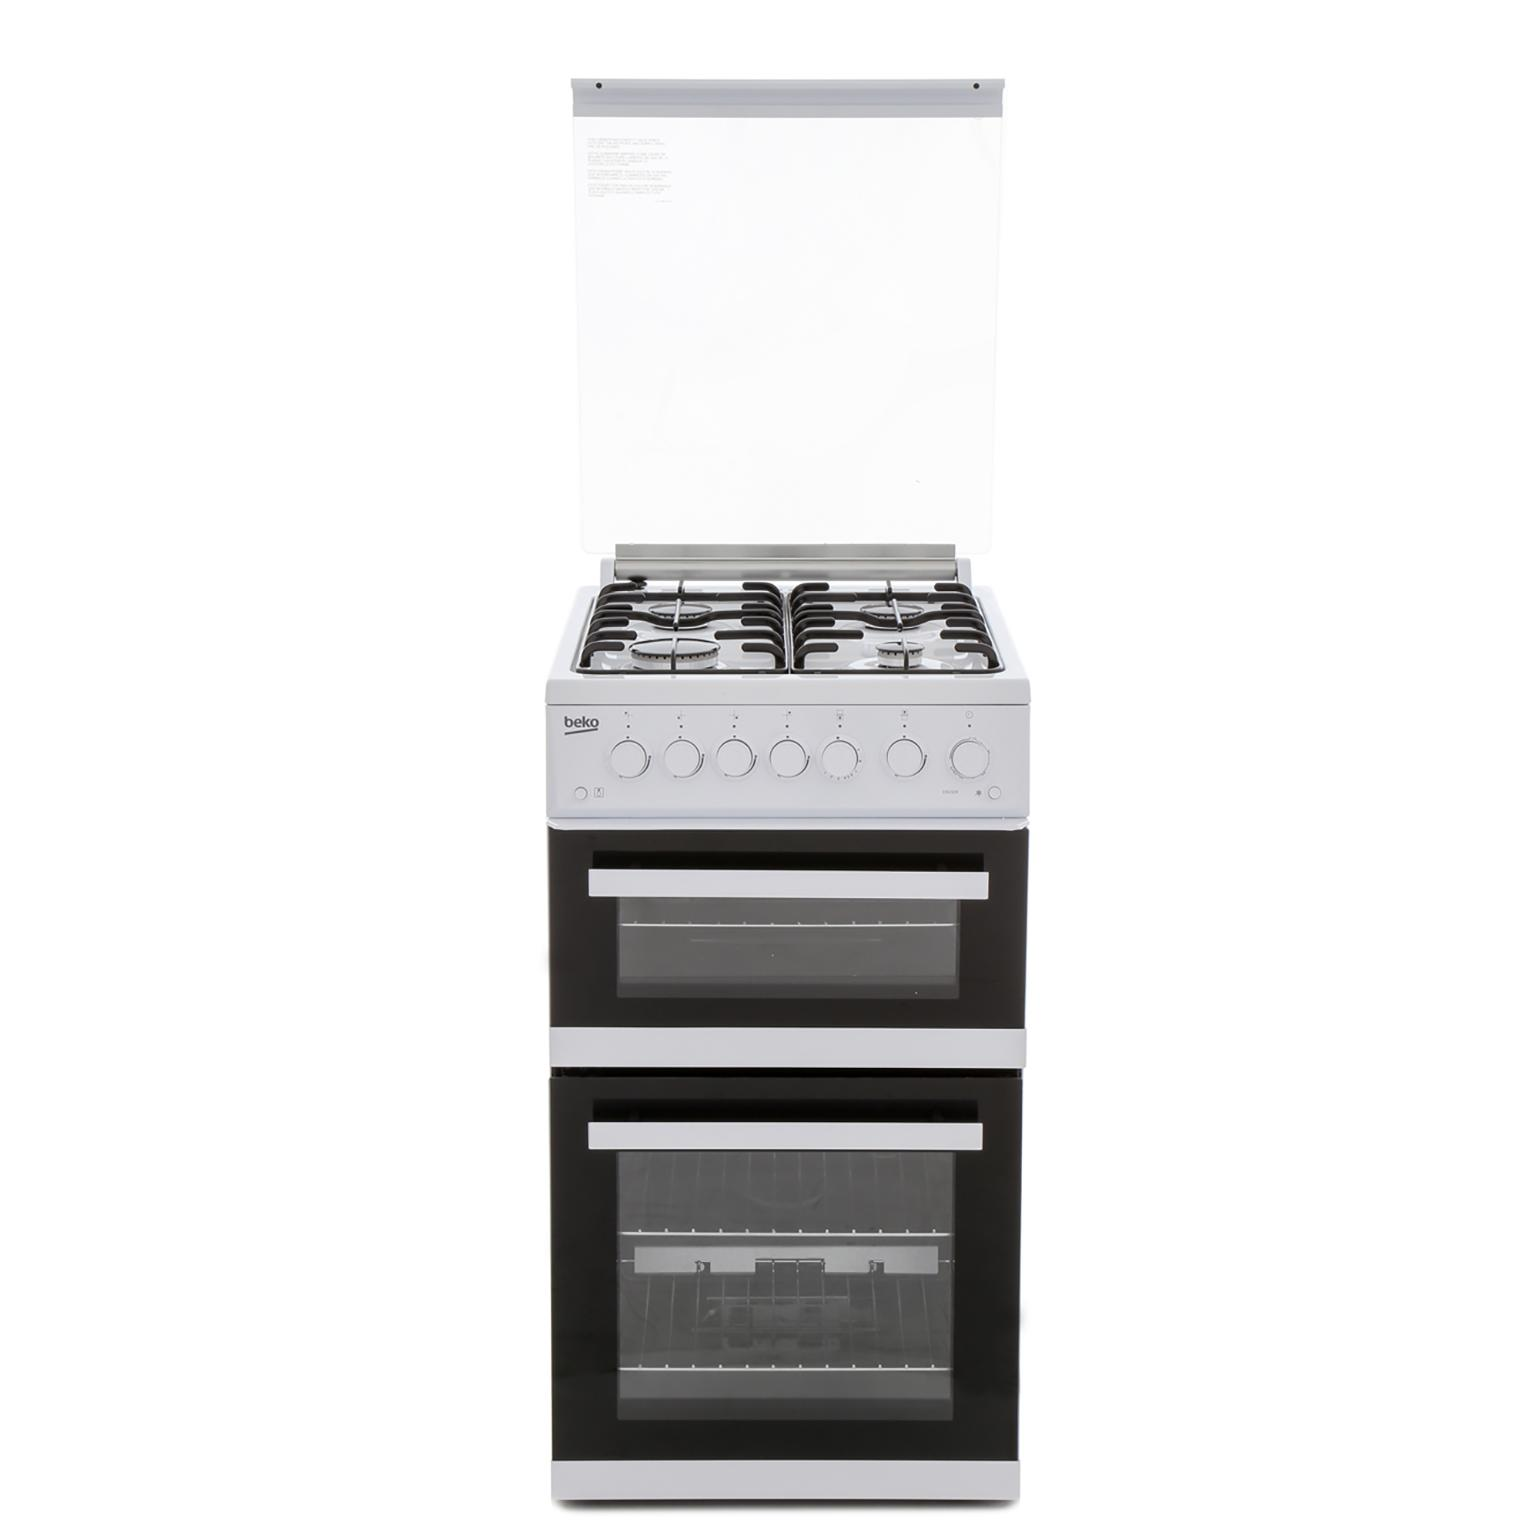 Beko EDG504W Gas Cooker Separate Grill